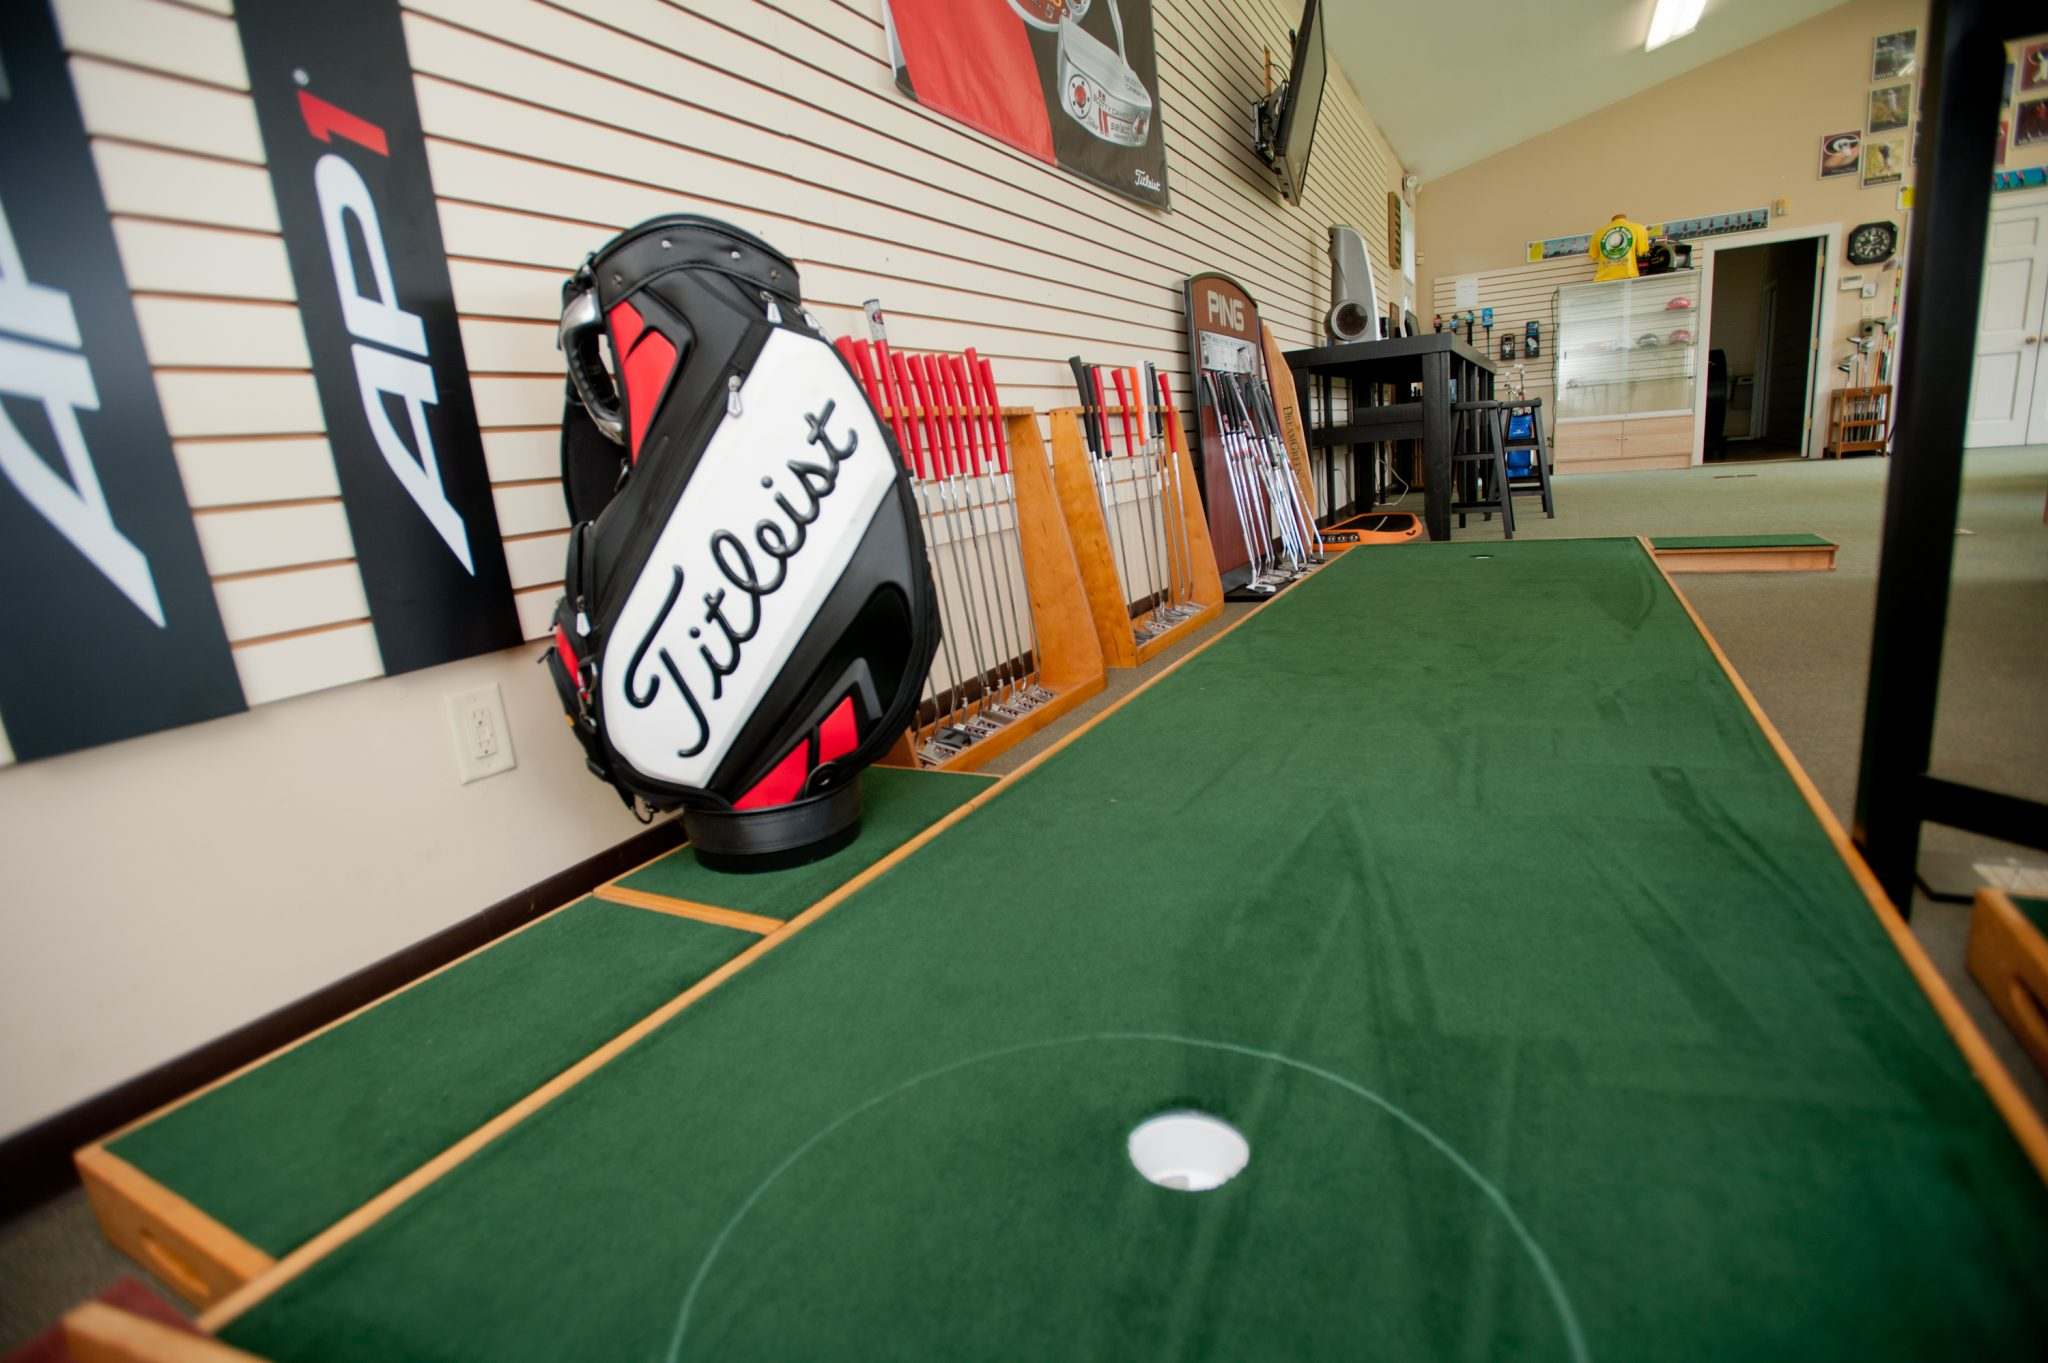 Instruction & Fitting – The Idle Hour Golf Learning Center